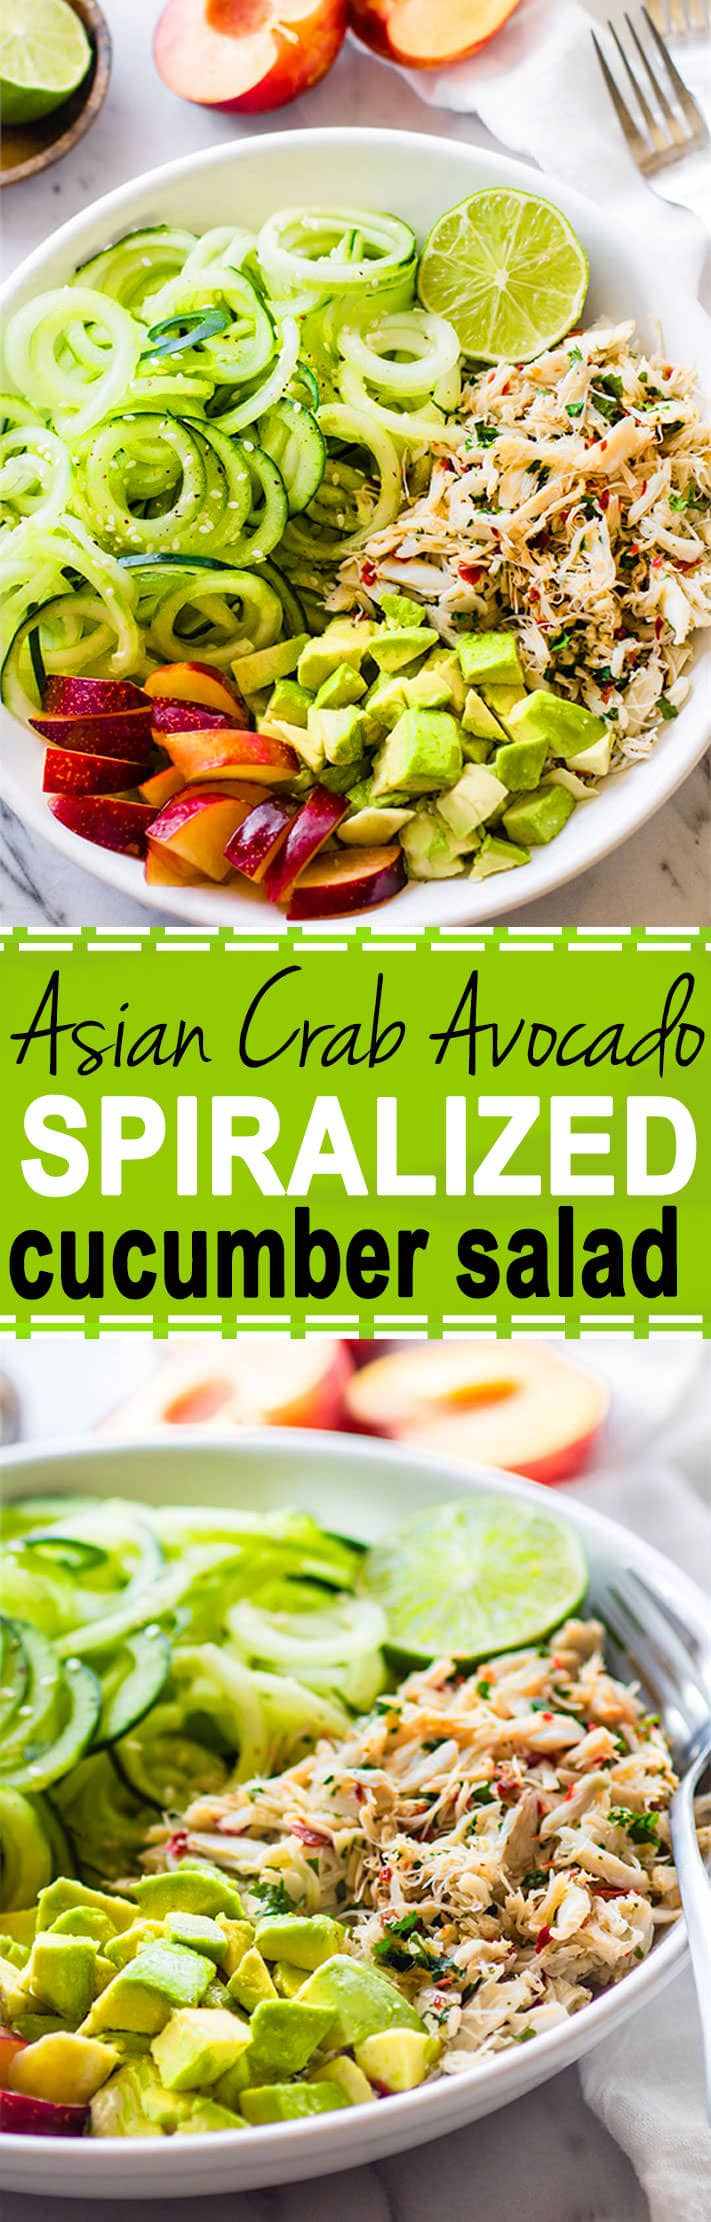 Healthy Asian Crab and Avocado Spiralized Cucumber Salad. Seafood lovers rejoice! You'll love this Power Lunch Paleo Asian Crab and Avocado Cucumber Salad! Light, Gluten Free, protein packed, and nutrient dense!! @cottercrunch